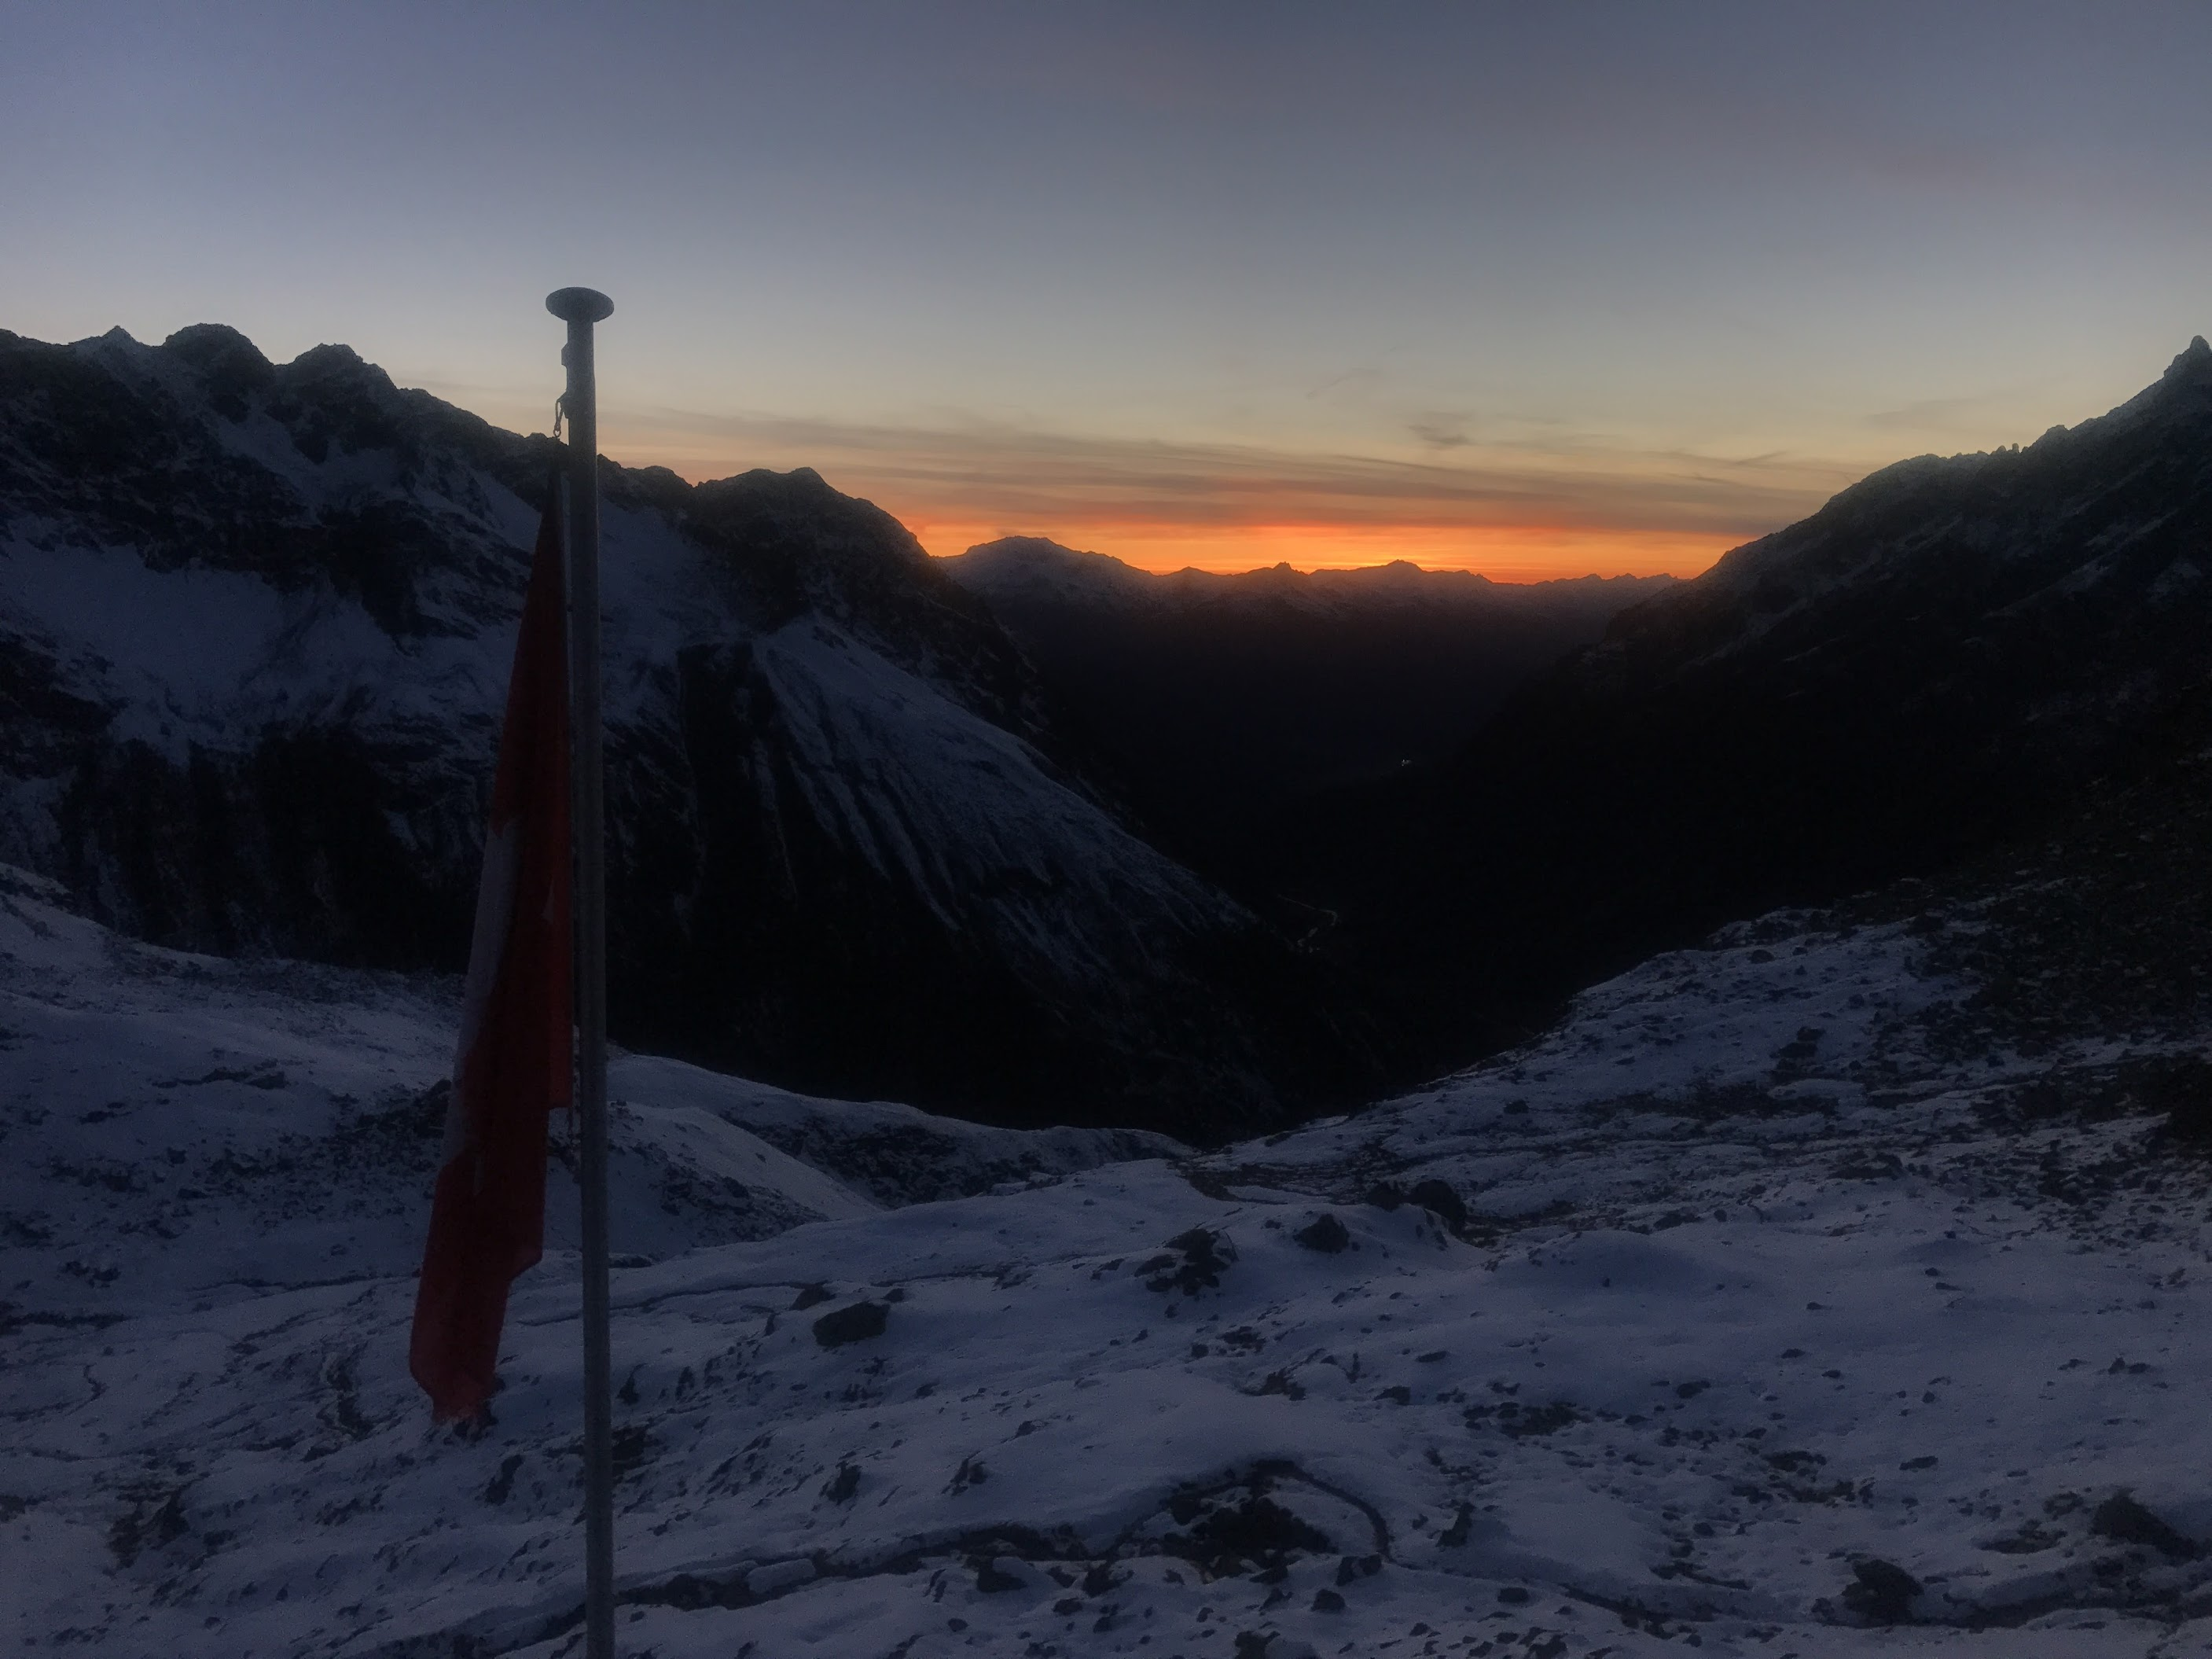 Wonderful sunset from the Silvretta hut